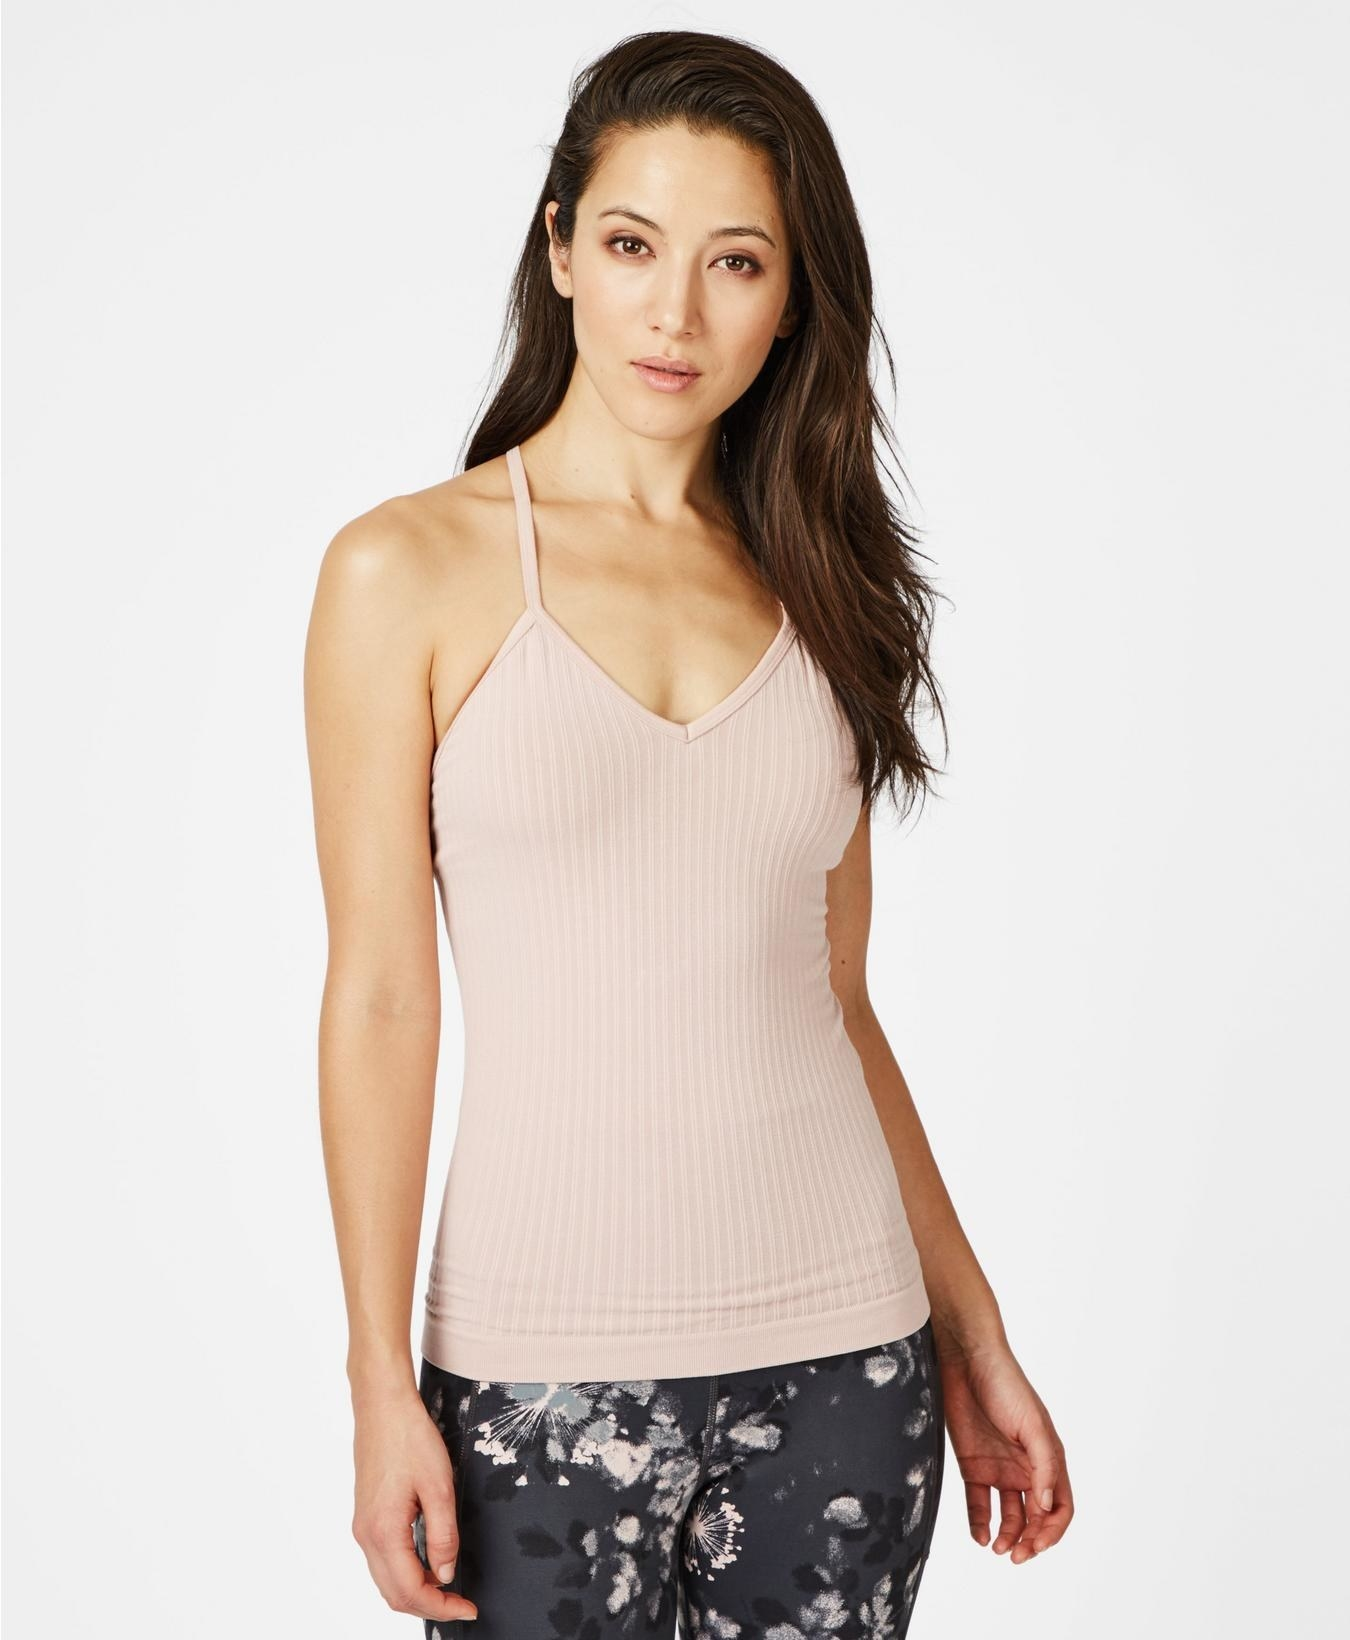 Model wearing the ribbed v-neck spaghetti strap tank in light pink